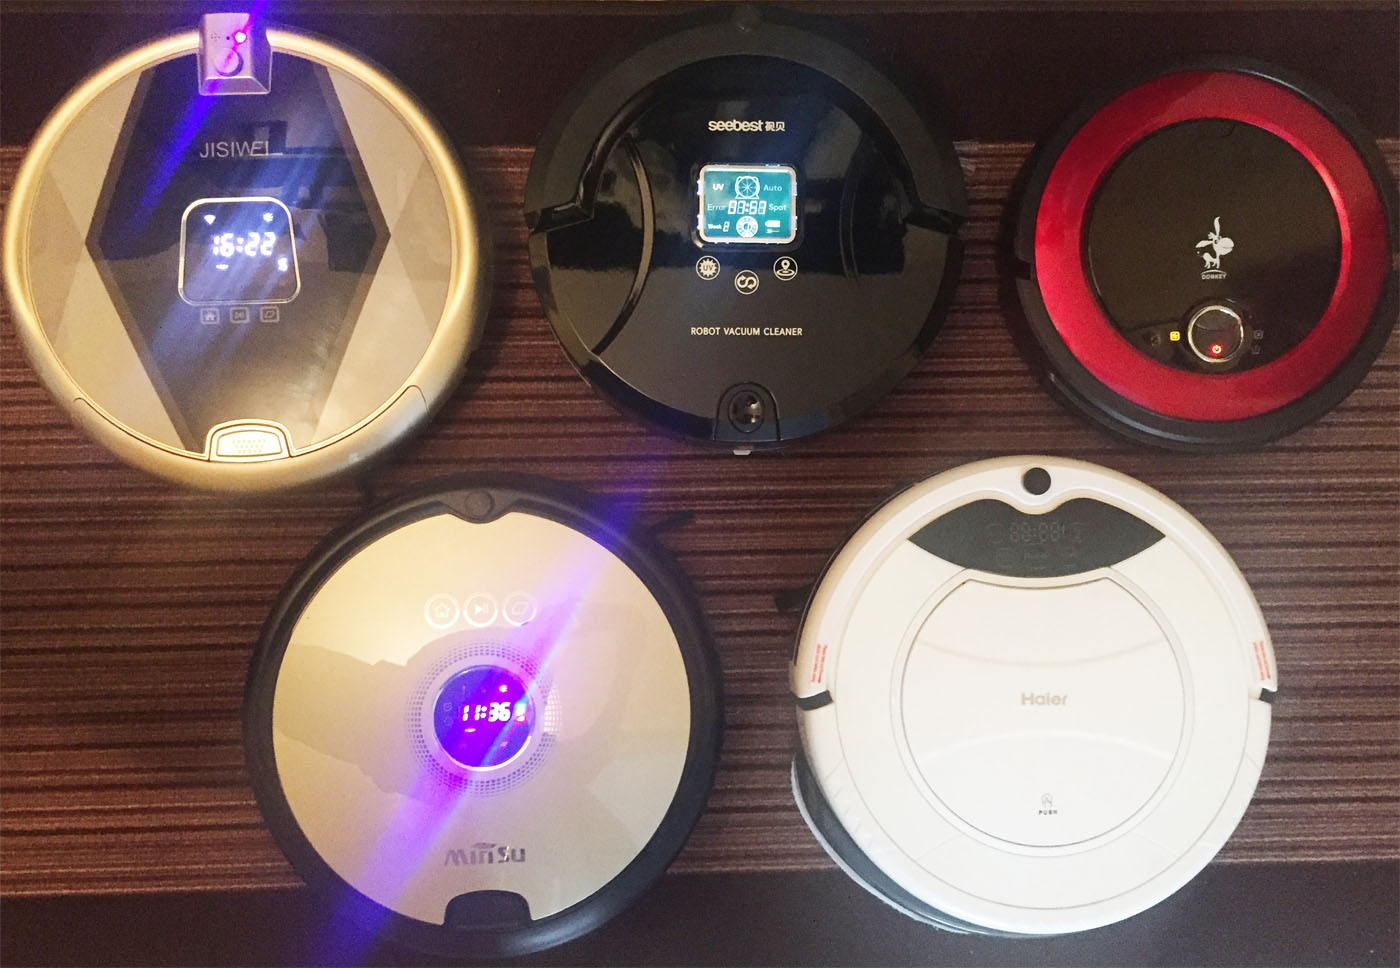 Best Robot Vacuum Cleaners Guide To Choosing The Perfect Robotic Vac Wiring Diagram